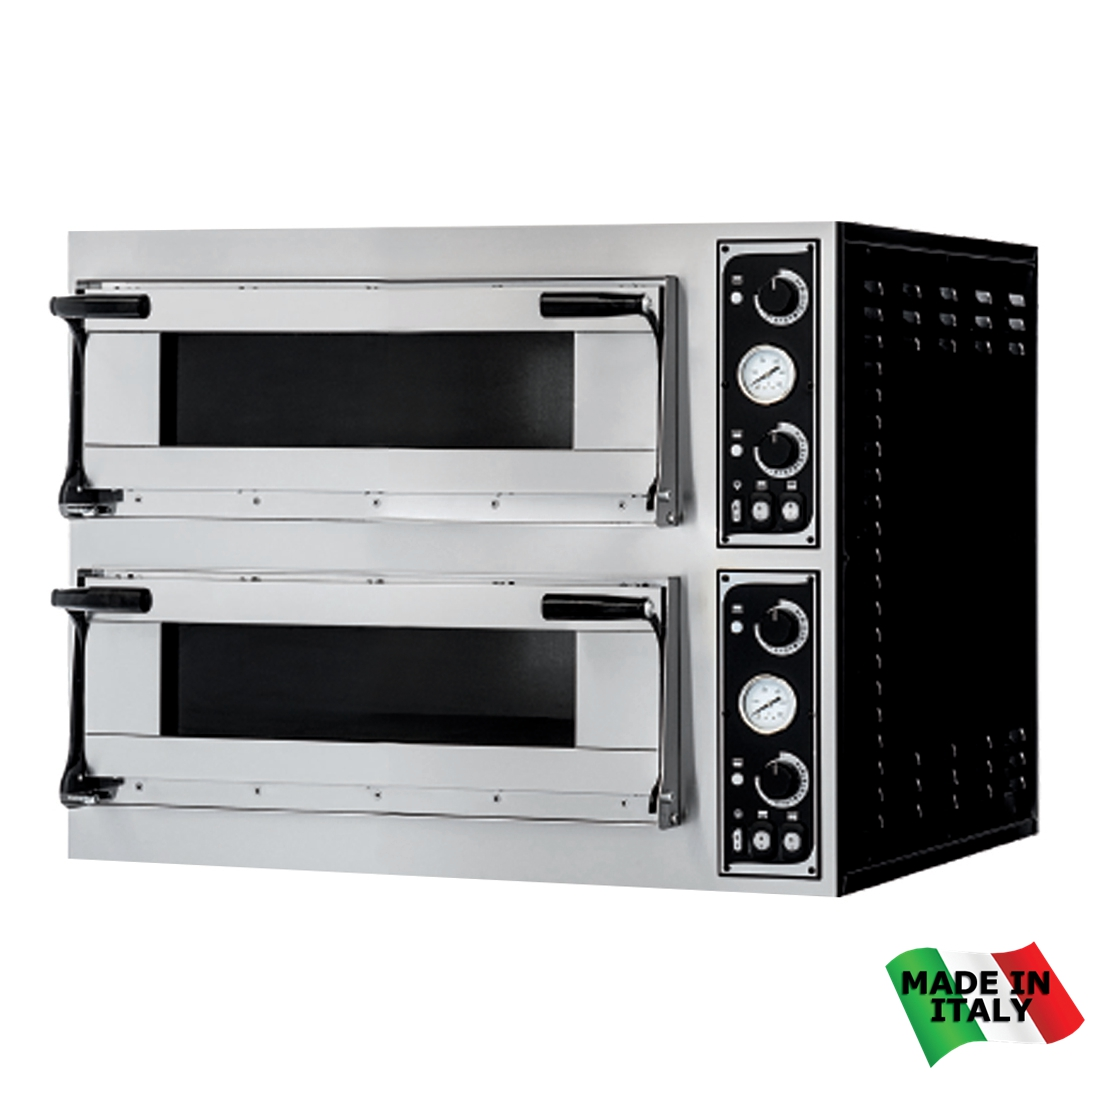 TP-2-SD Prisma Food Pizza Ovens Double  Deck 12 x 35cm